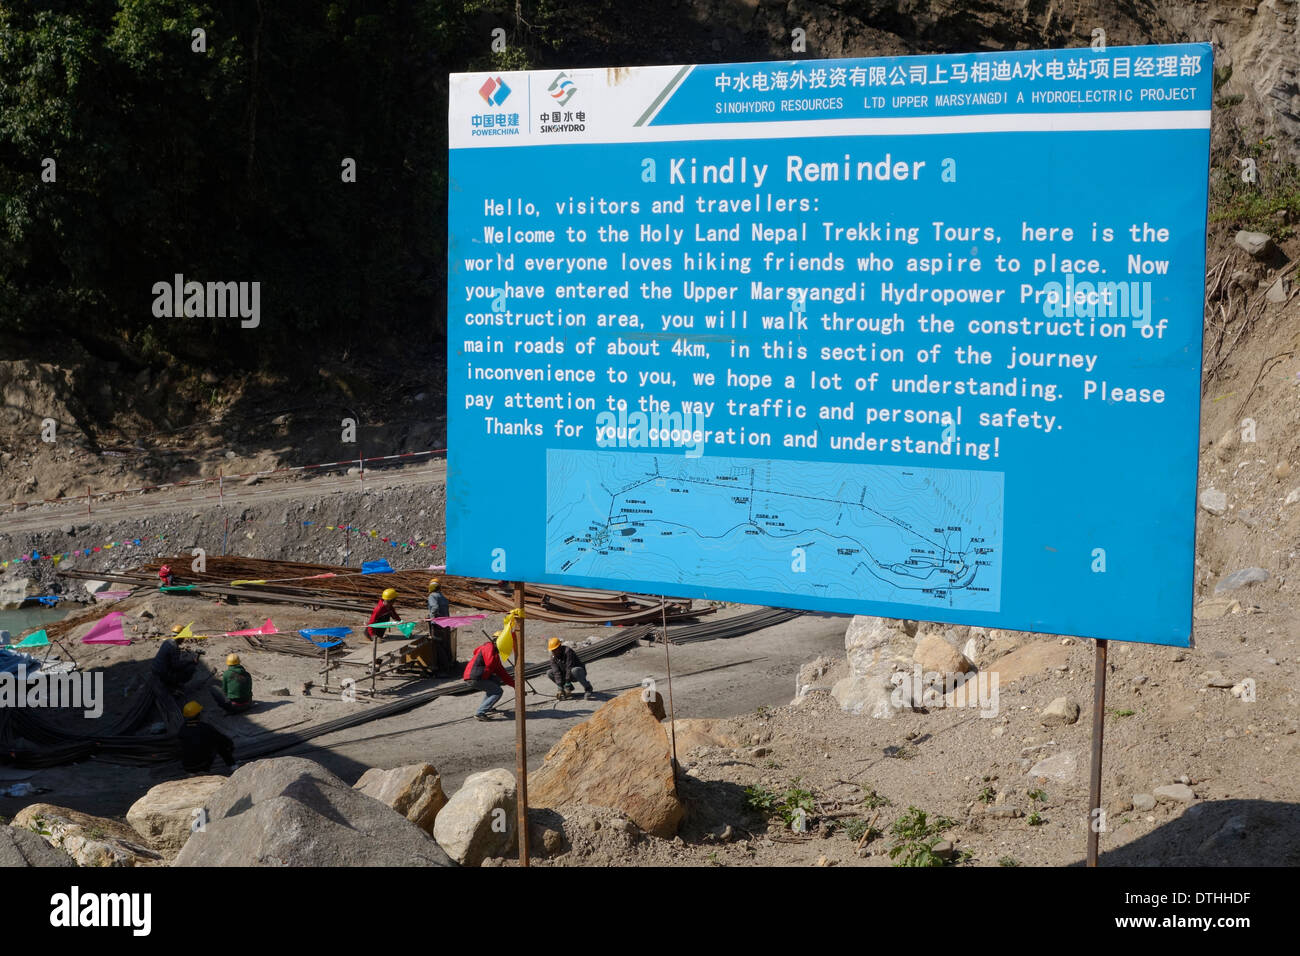 Sign for the controversial Upper Marsyangdi Hydropower Project in Nepal. - Stock Image